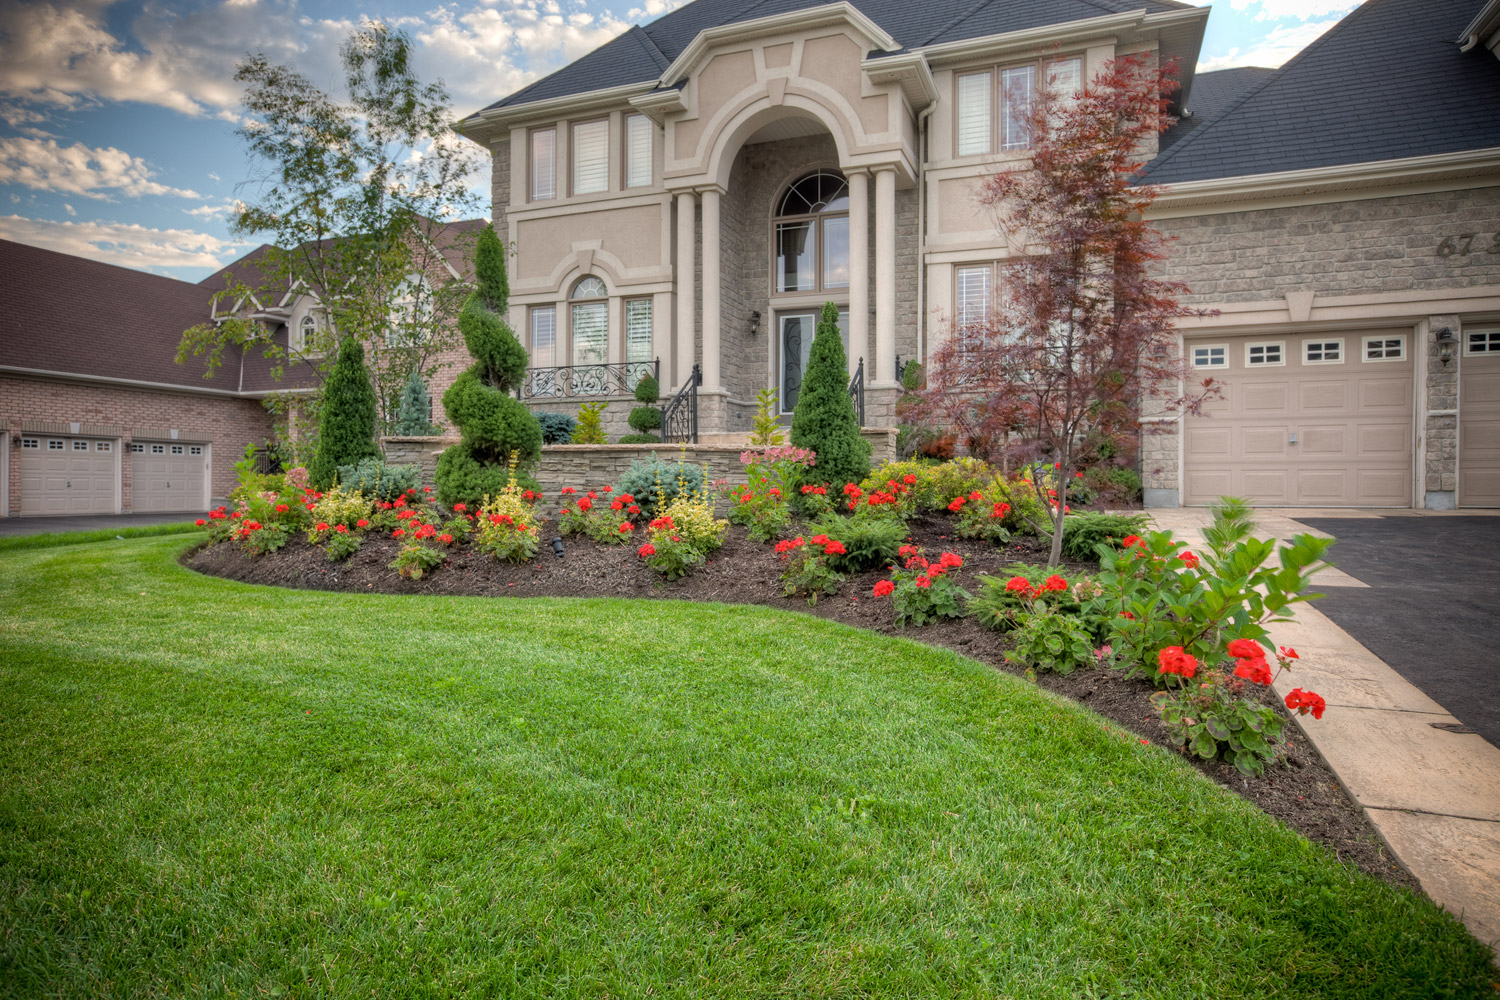 Fullsize Of Home Front Yard Landscaping